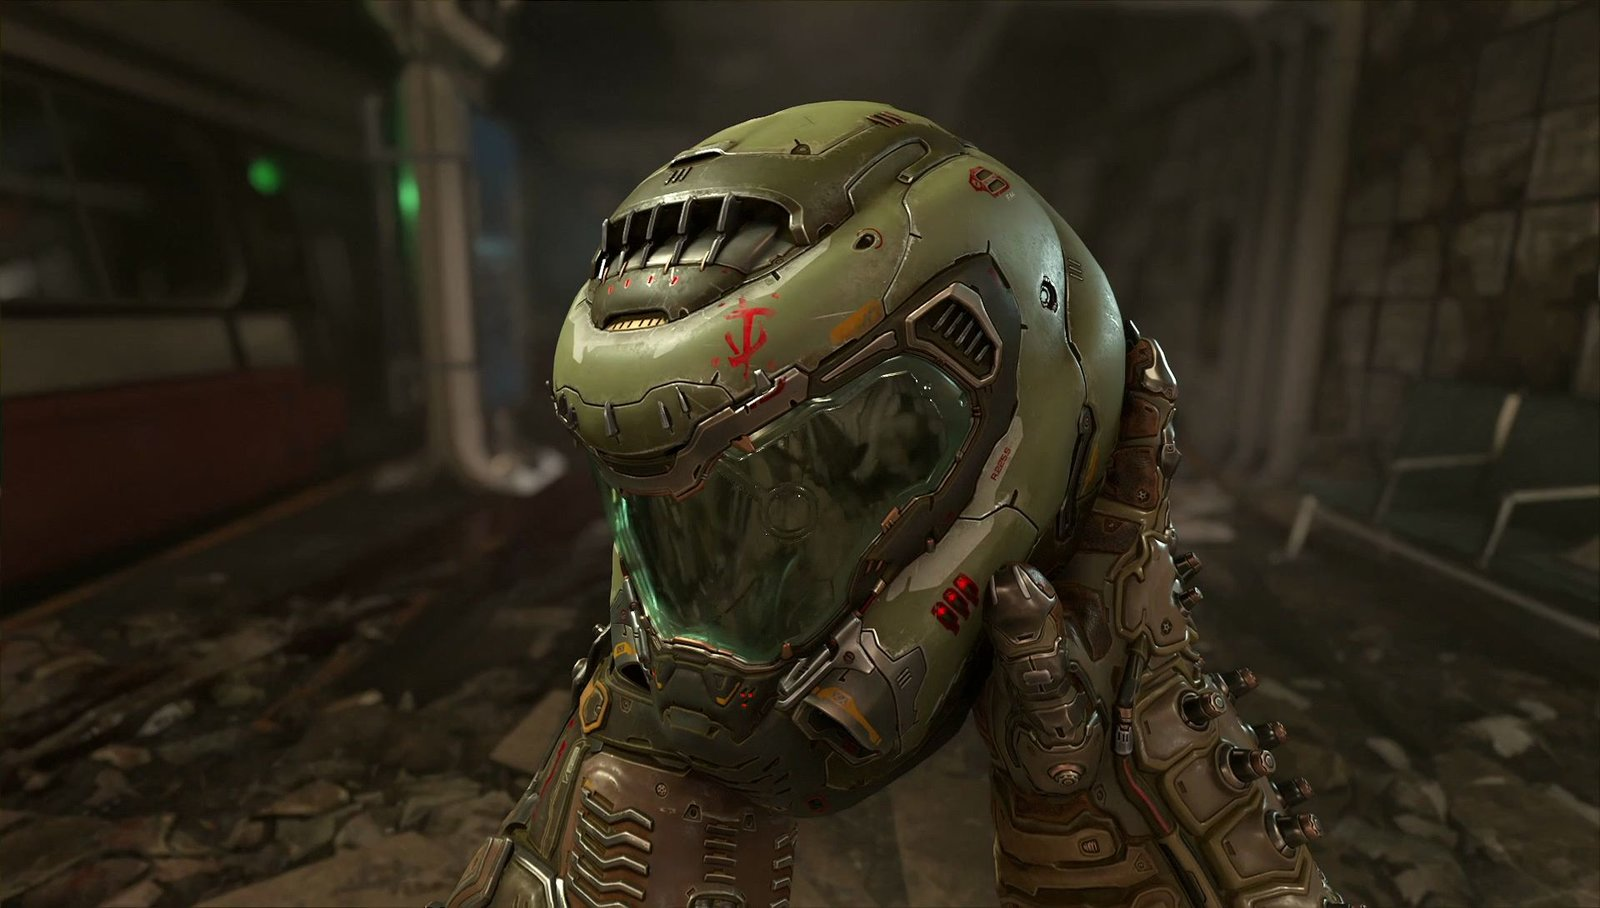 DOOM_Eternal_Slayer_Helmet_1533718928.jpg.b8fe847336edaa2bf05b6ed6393965ba.jpg